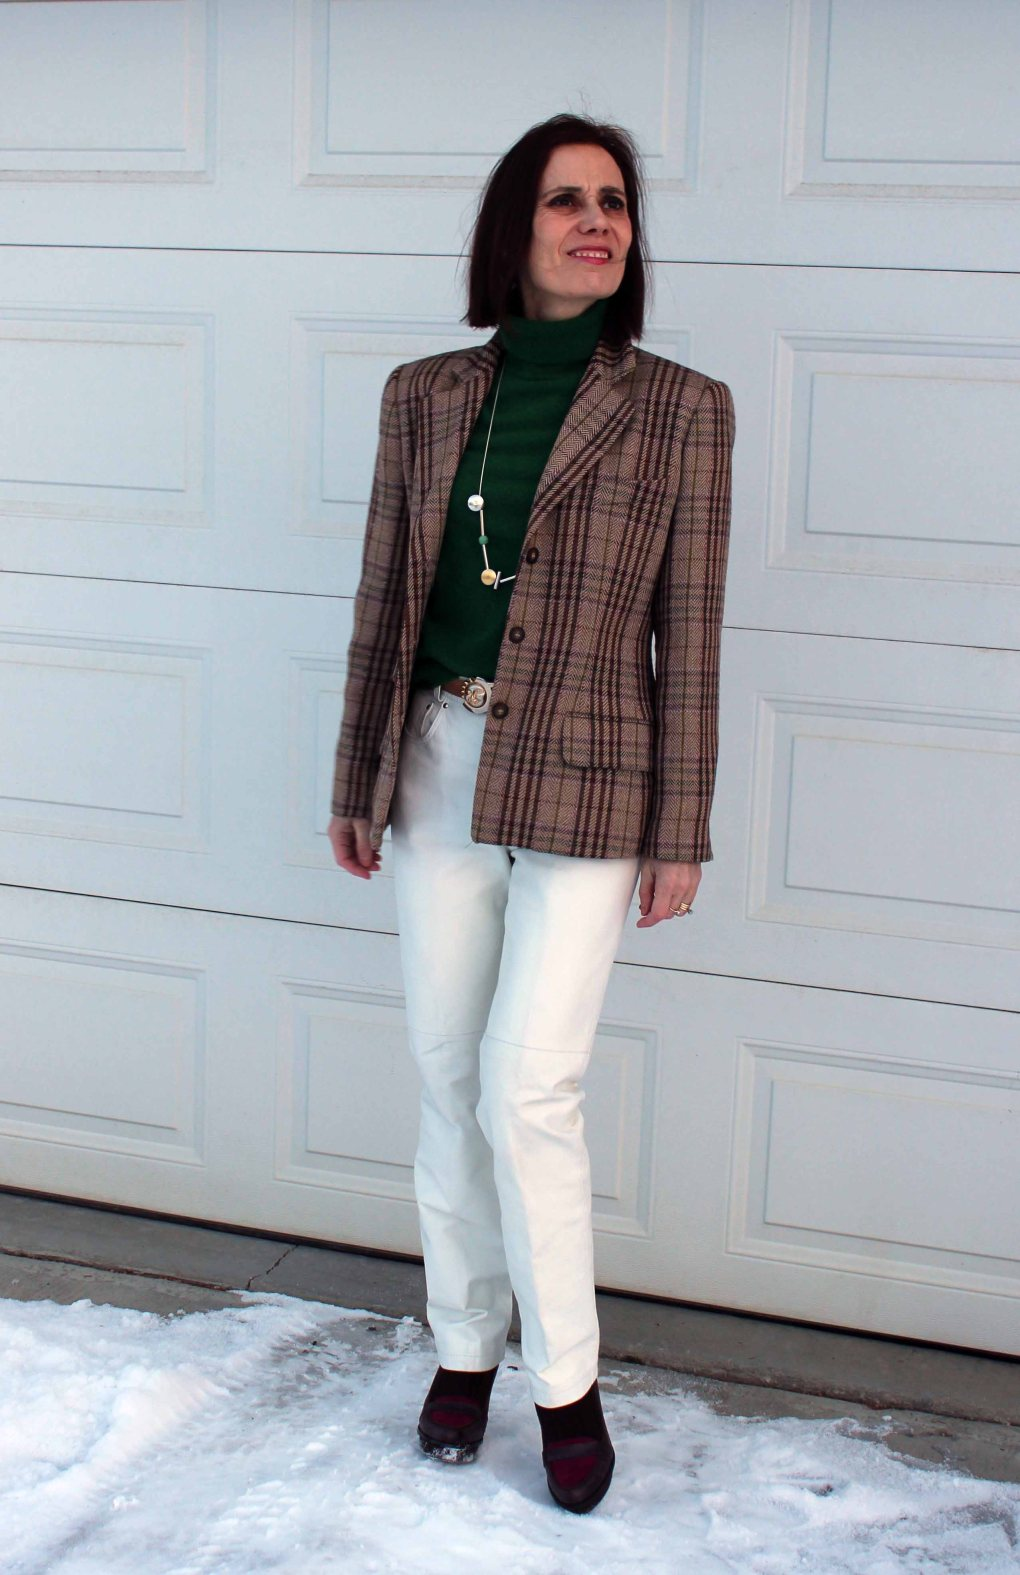 #fashionover50 woman in white leather pants with tartan blazer and green sweater